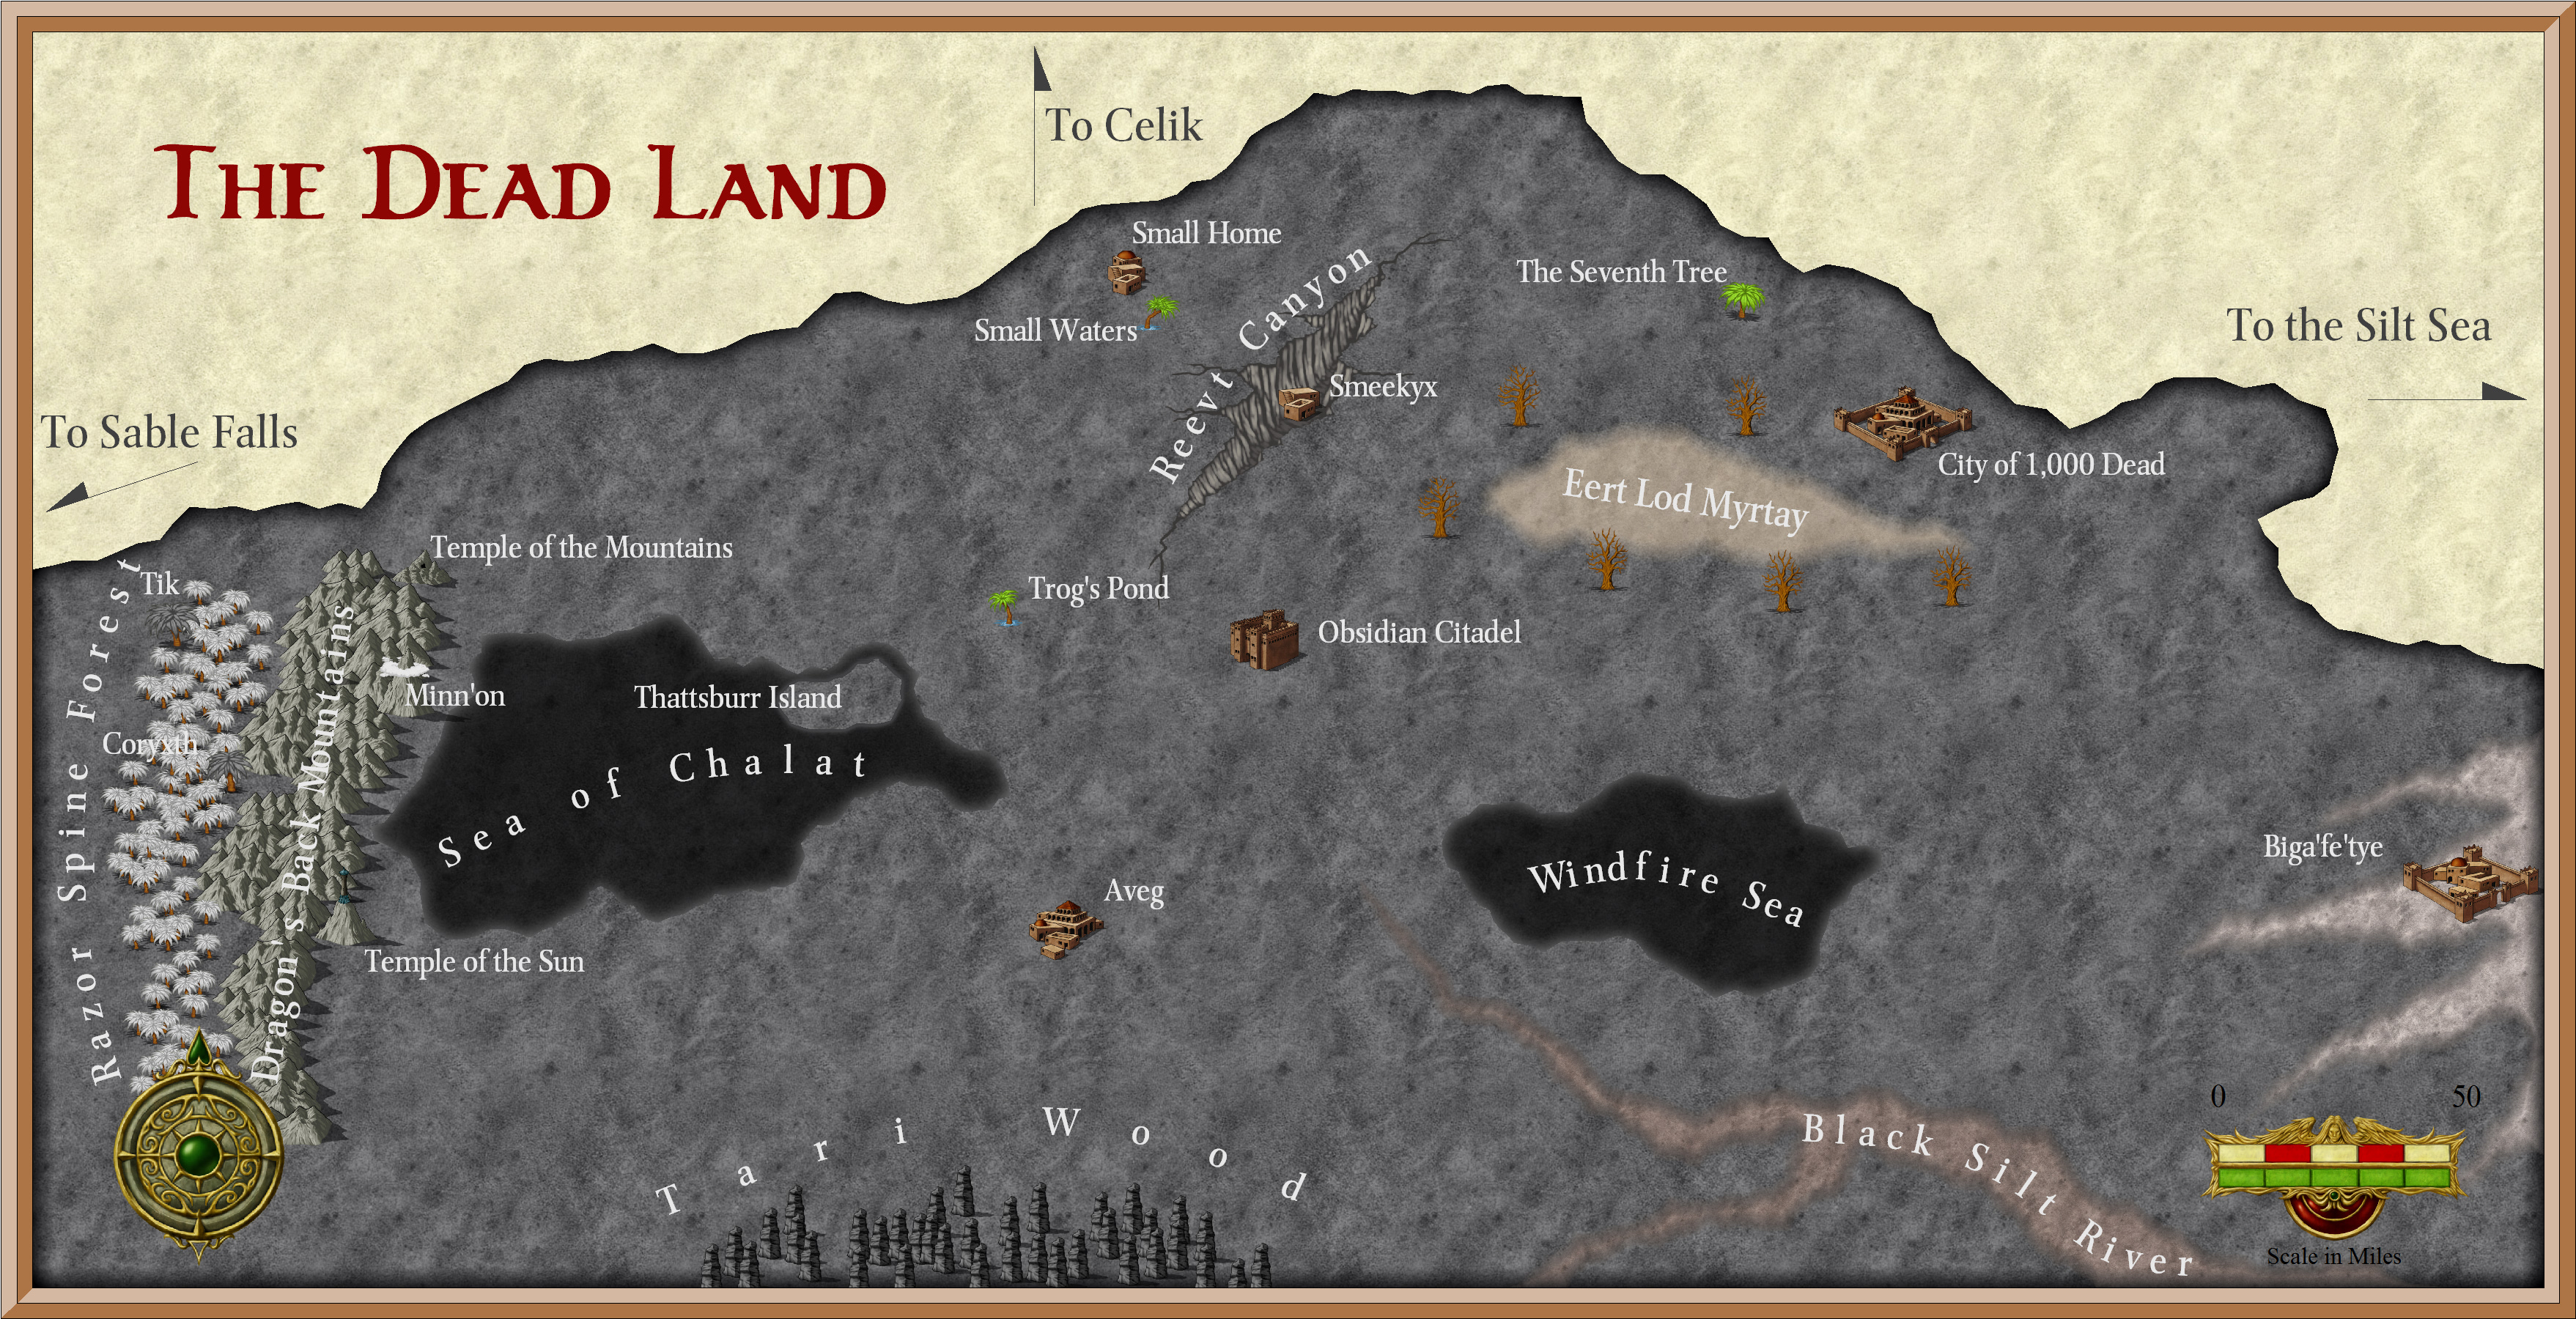 Athas World Map.The Burnt World Of Athas Net Project The Dead Land Of Athas 4e